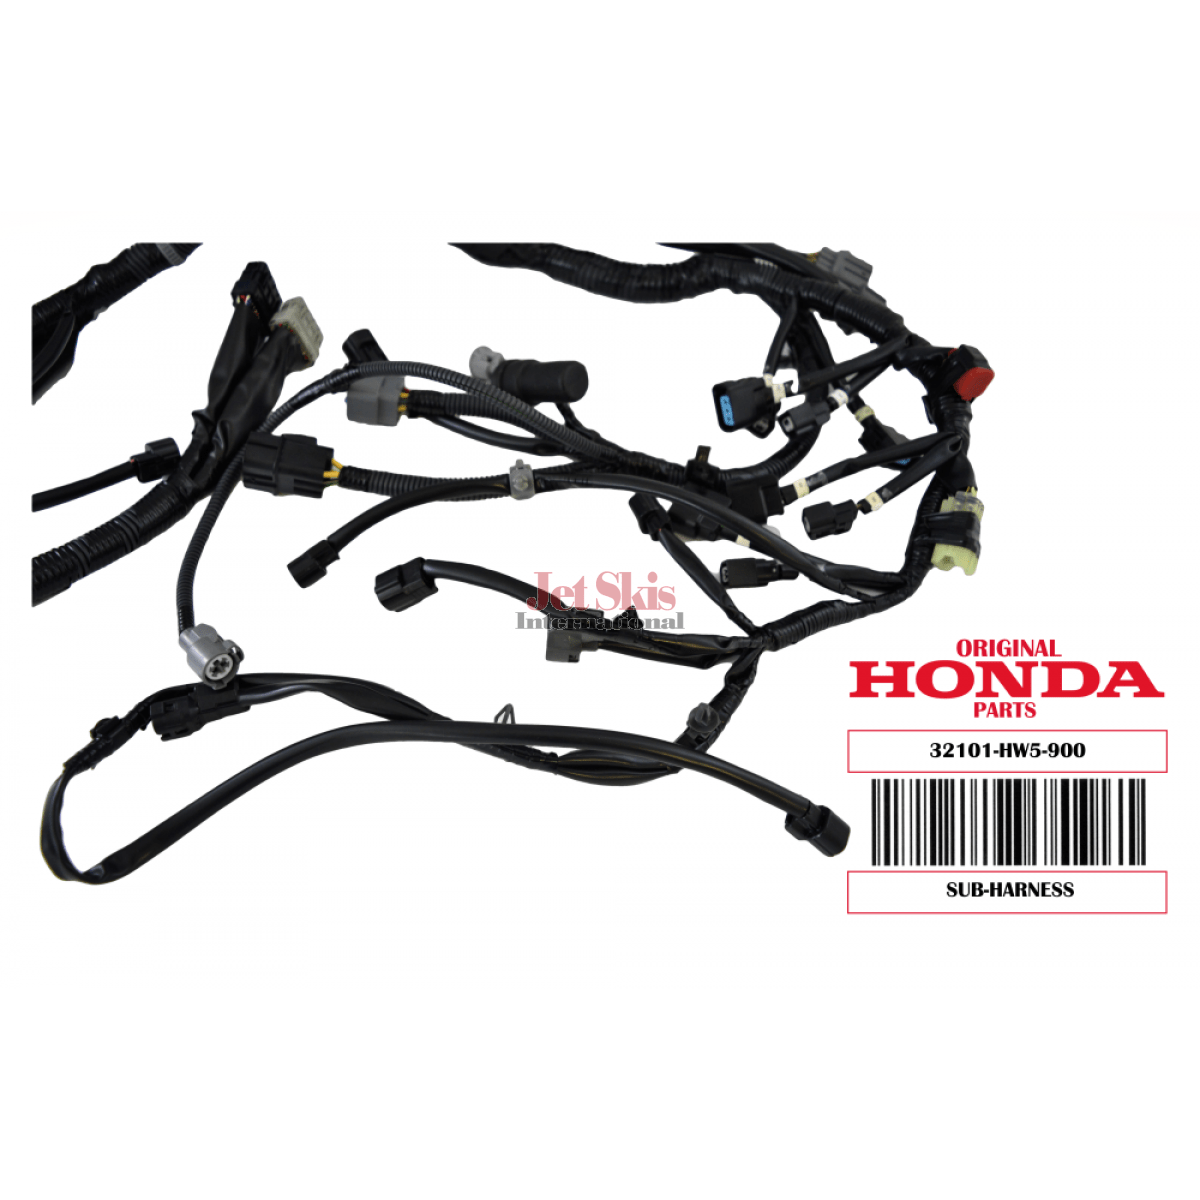 Honda Aquatrax Injector Amp Ignition Coil Sub Harness